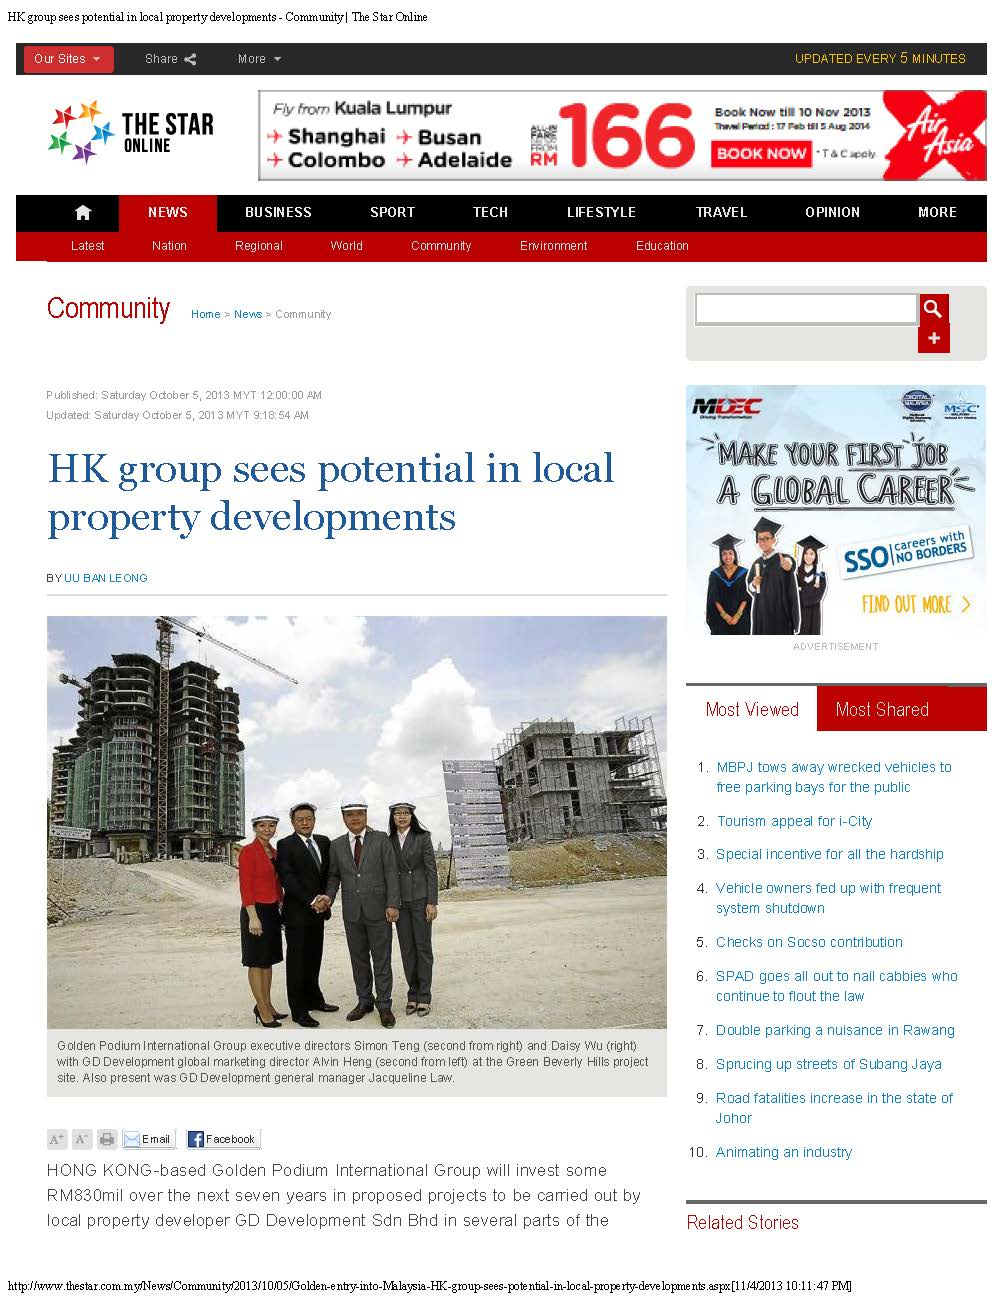 hk group sees potential in local  property developments- the star online- astaka